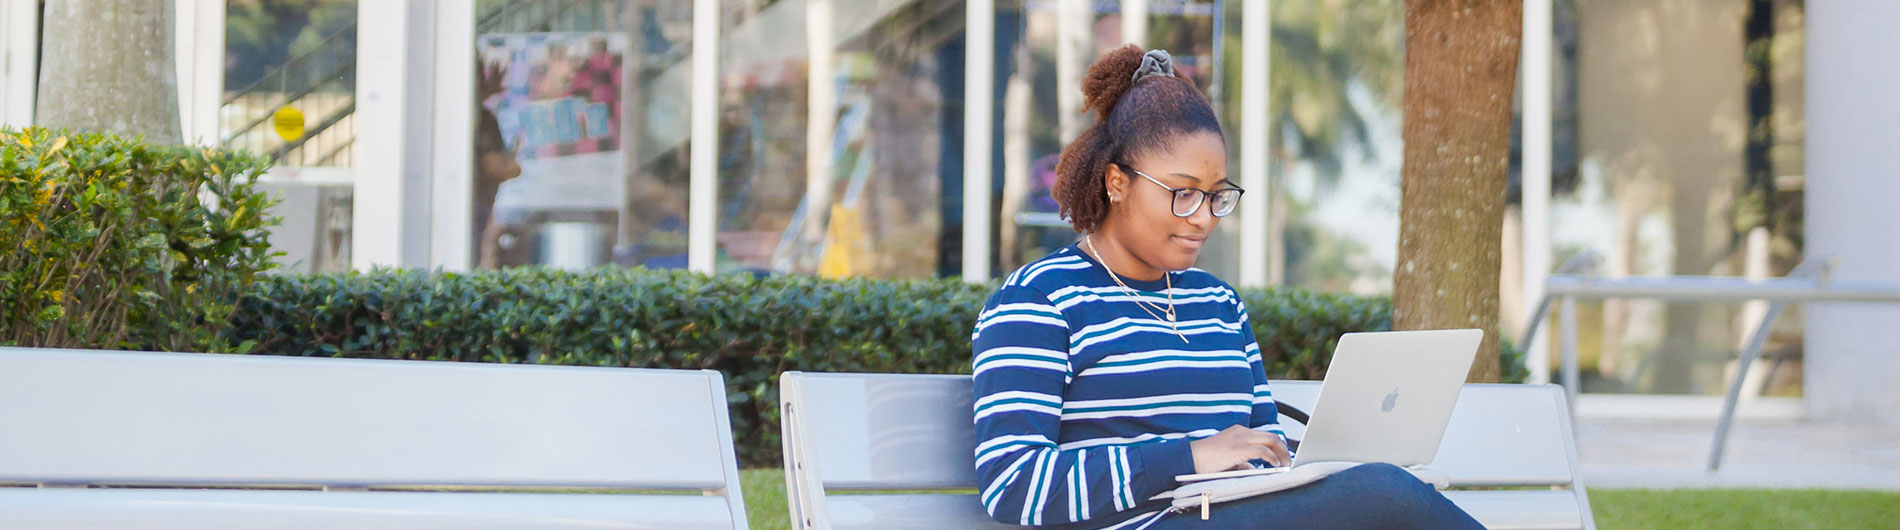 Female student working on a laptop on a bench outside and talking outside